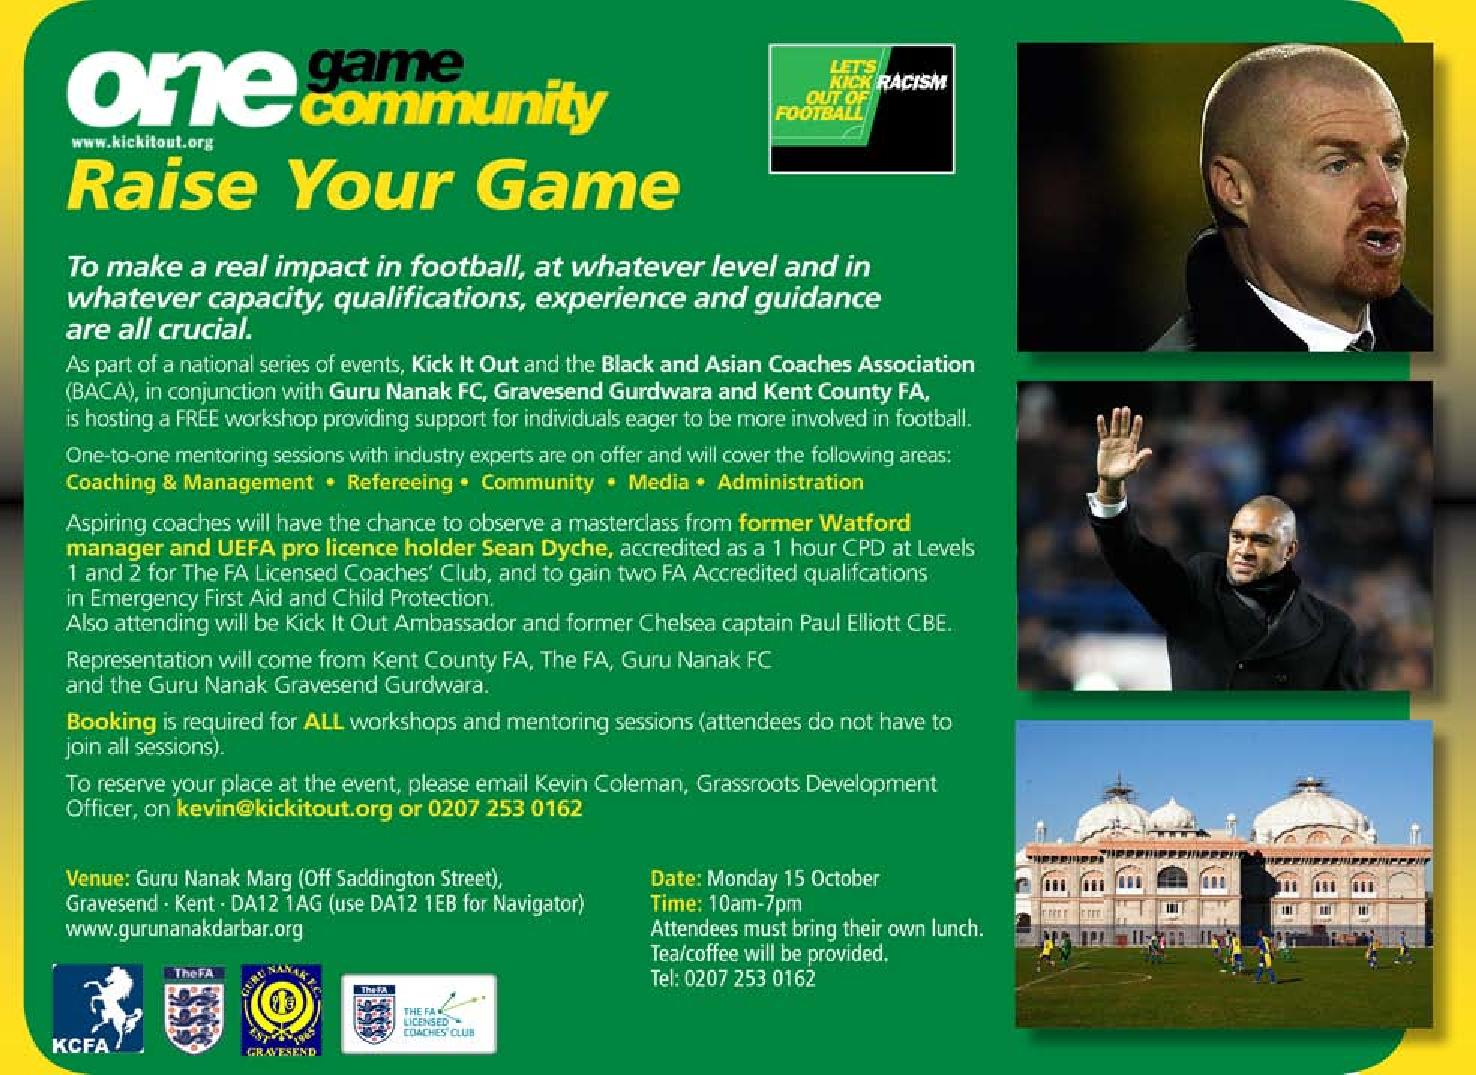 Raise your game- Kick It Out and BACA event - Gravesend Gurdwara 15 October 2012